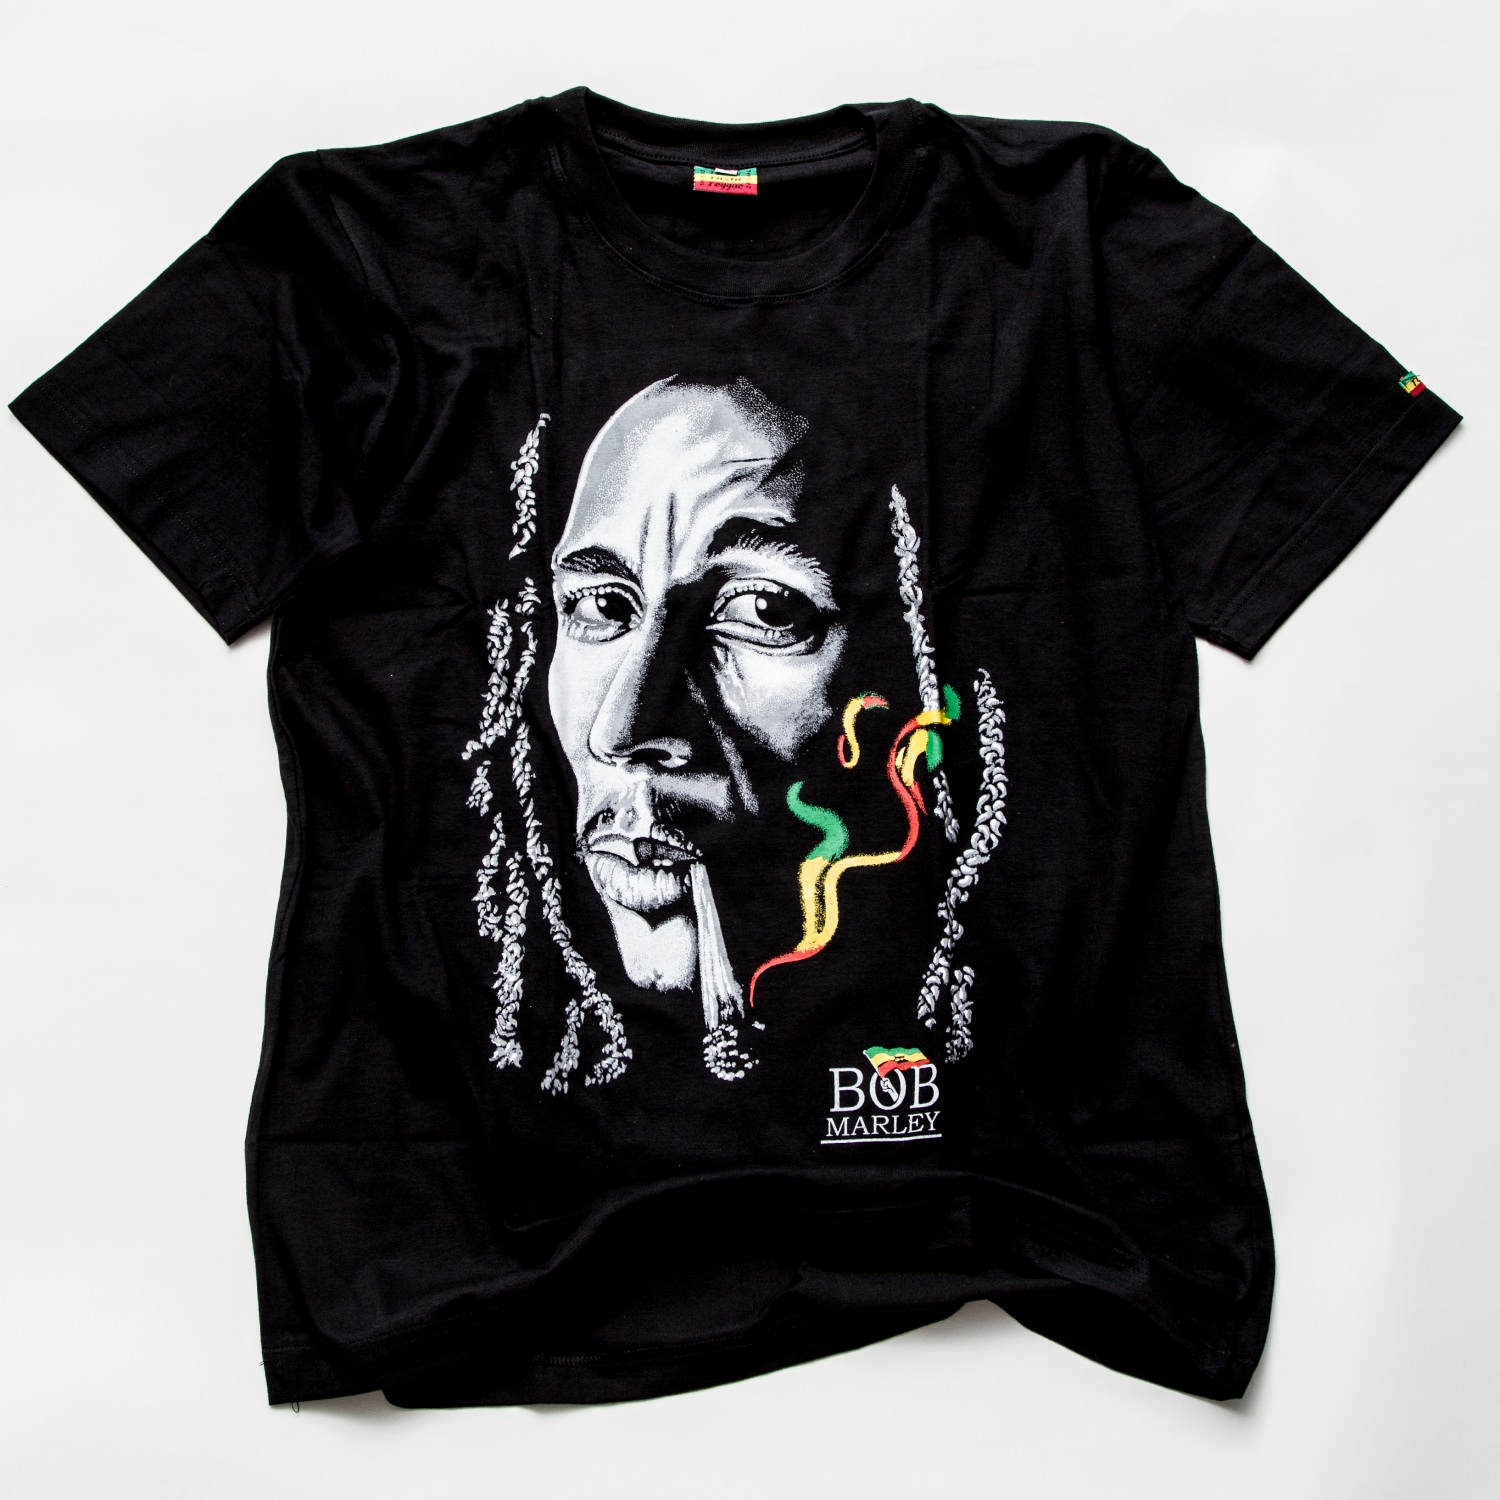 Bob Marley was born 6 February on the farm of his maternal grandfather in Nine Mile, Saint Ann Parish, Jamaica, to Norval Sinclair Marley (–) and Cedella Booker (–). Norval Marley was a white Jamaican originally from Sussex, England, whose family claimed Syrian Jewish origins.